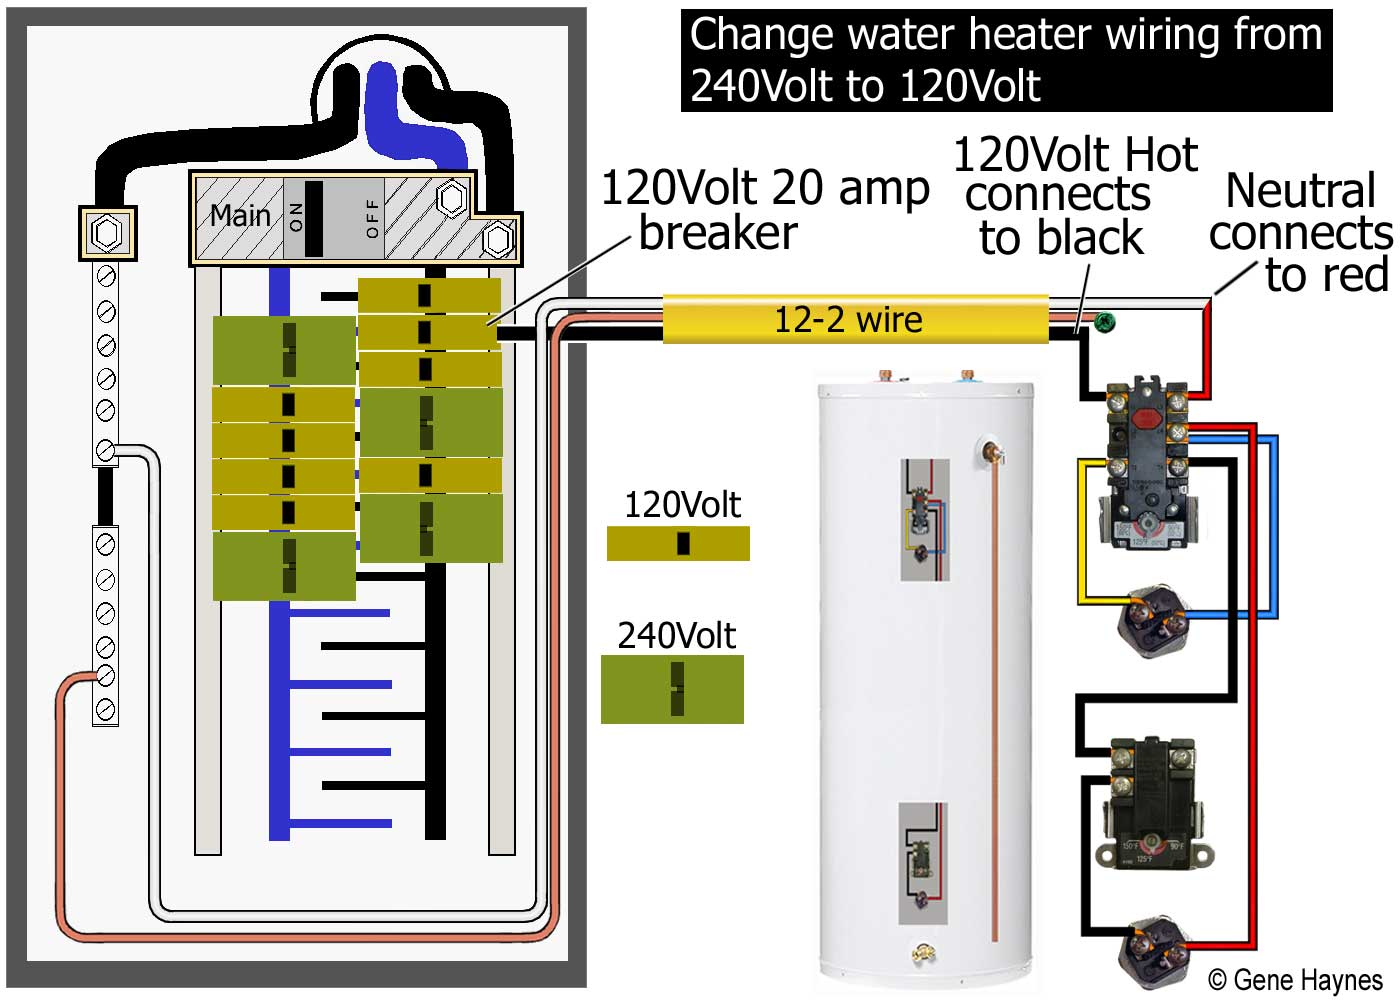 Sensational How To Wire Water Heater For 120 Volts Wiring Cloud Onicaalyptbenolwigegmohammedshrineorg